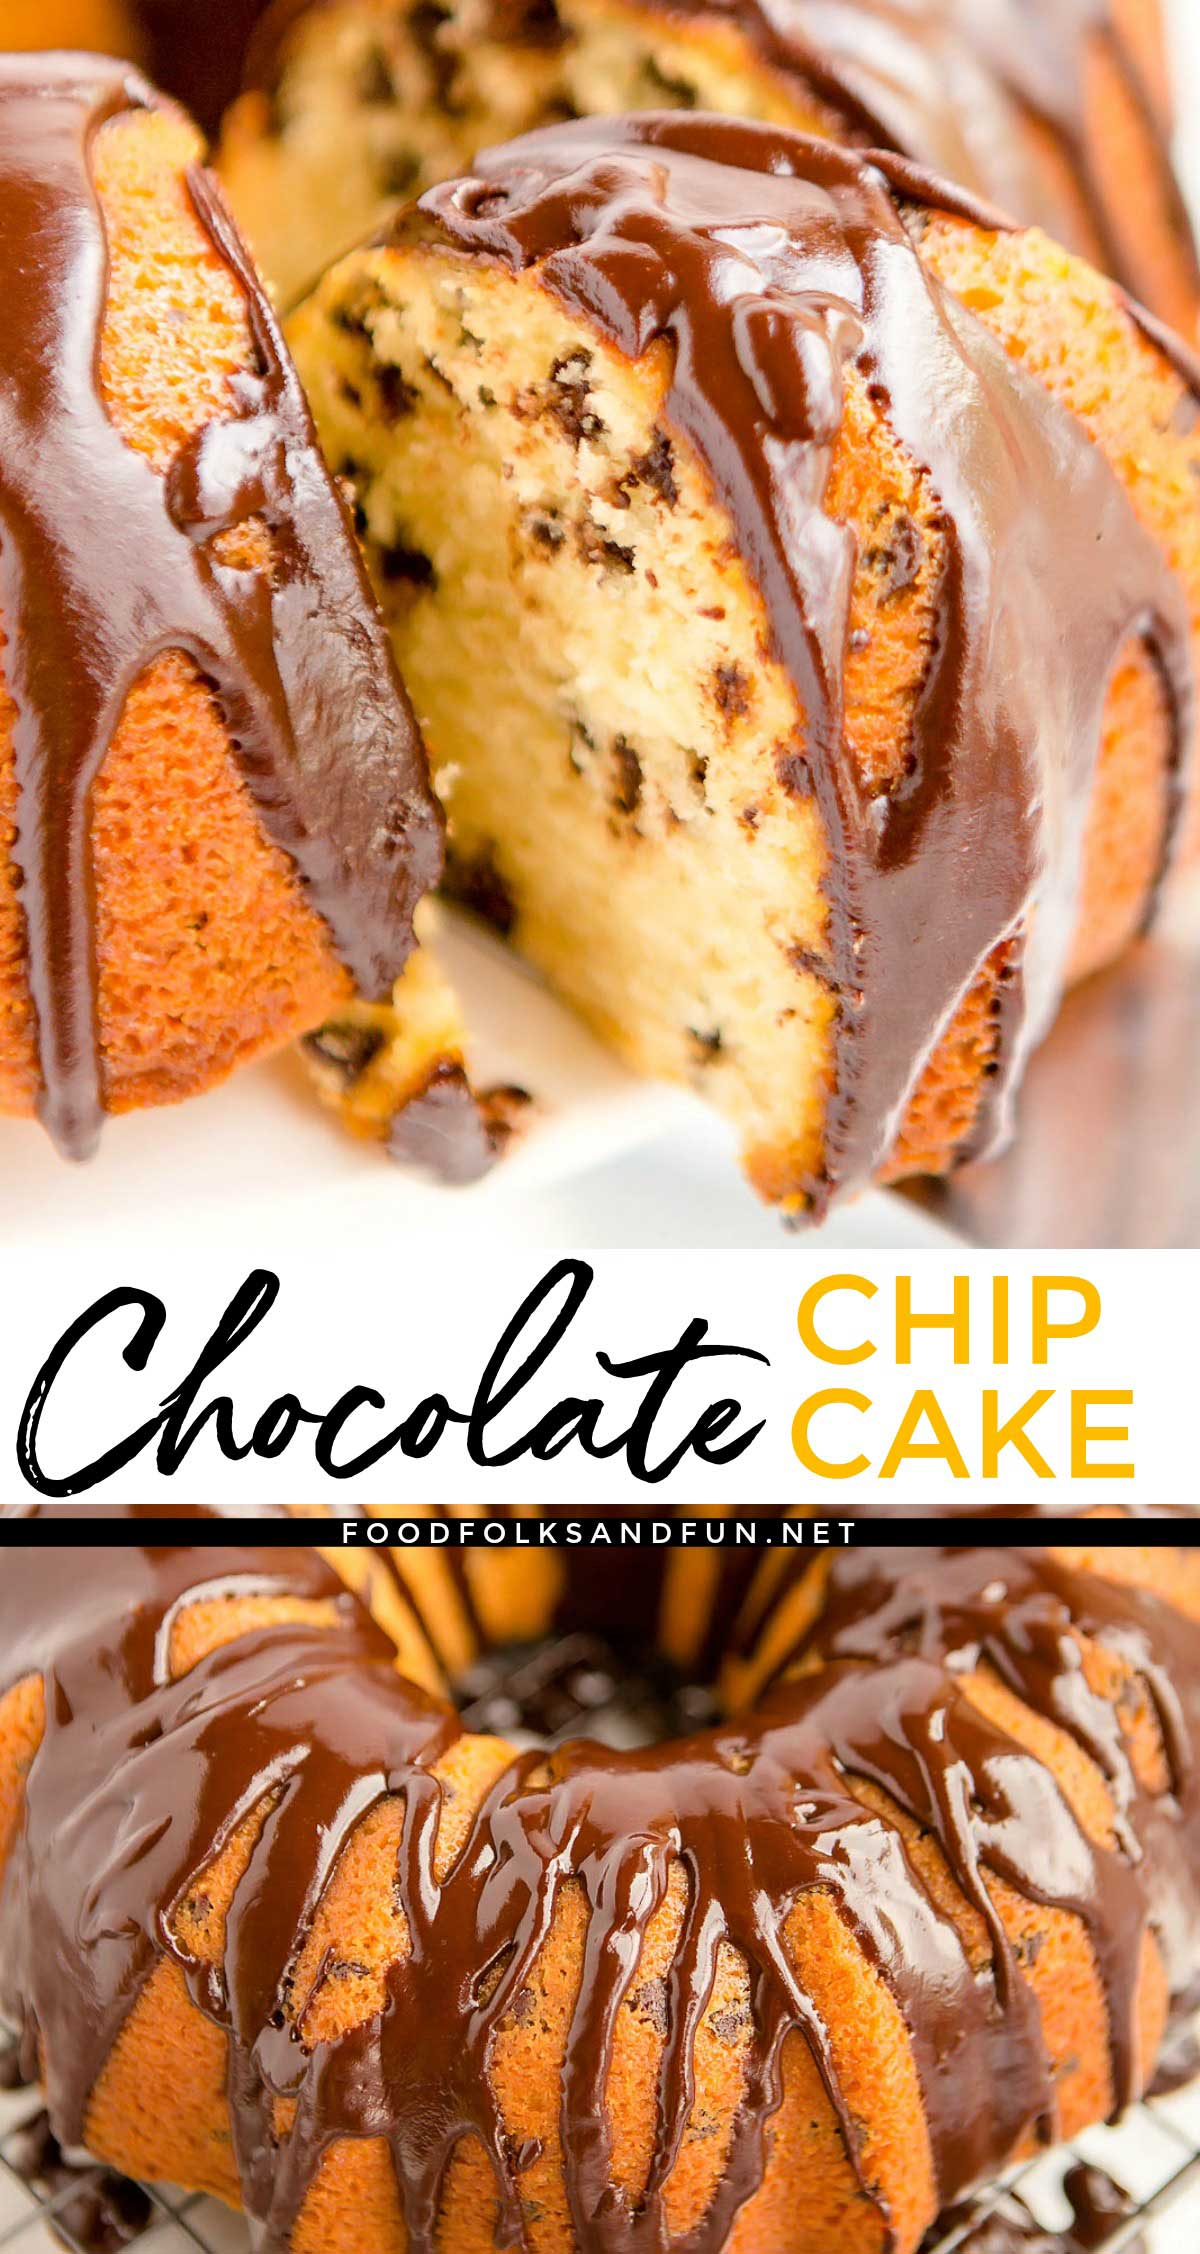 This Chocolate Chip Cake recipe has been a family favorite for over 30 years. It uses simple pantry ingredients that come together to make an irresistible Chocolate Chip Bundt Cake. Make it and it will become a staple at your family get-togethers, birthdays, and parties! via @foodfolksandfun